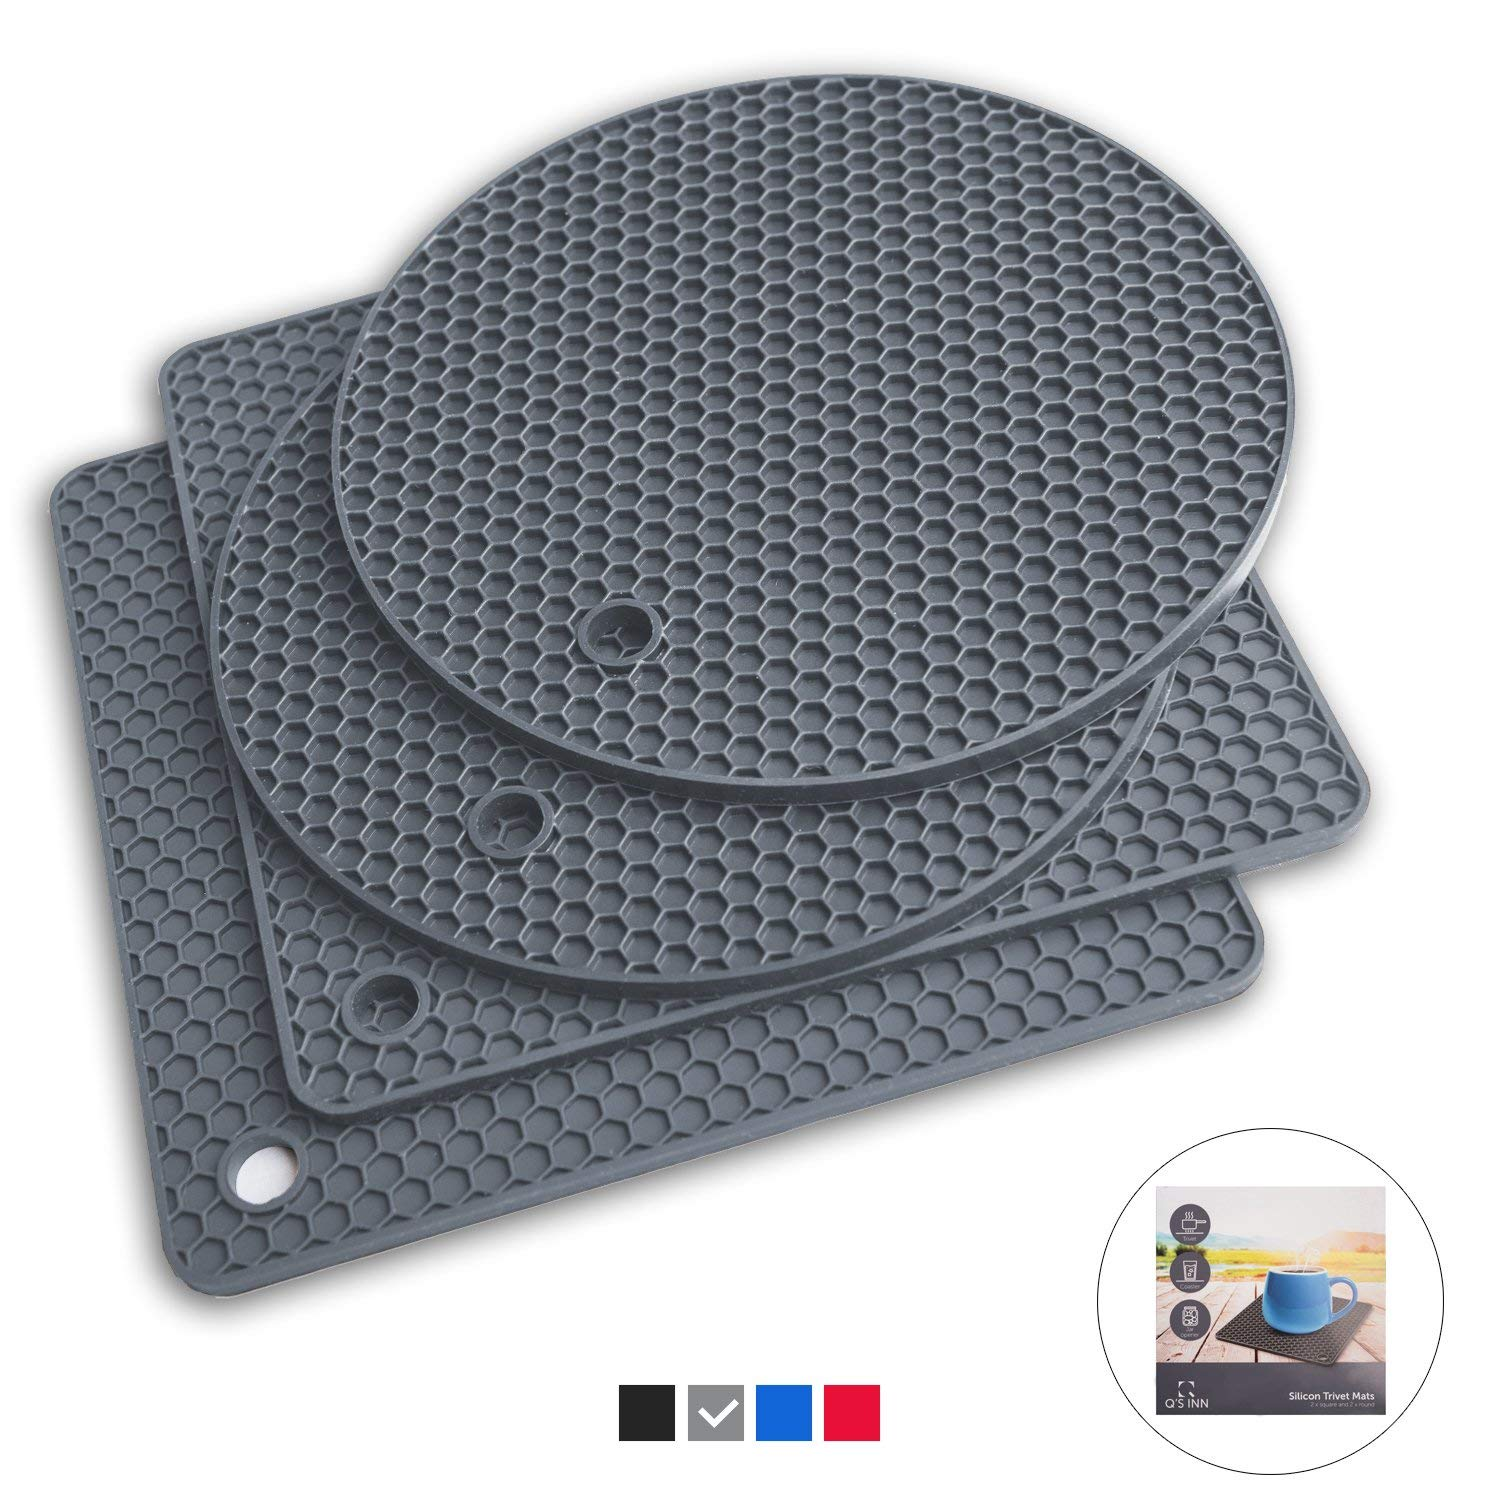 Q's INN Silicone Trivet Mats | Hot Pot Holders | Drying Mat. Our 7 in 1 Multi-Purpose Kitchen Tool is Heat Resistant to 440°F, Non-slip,durable, flexible easy to wash and dry and Contains 4 pcs